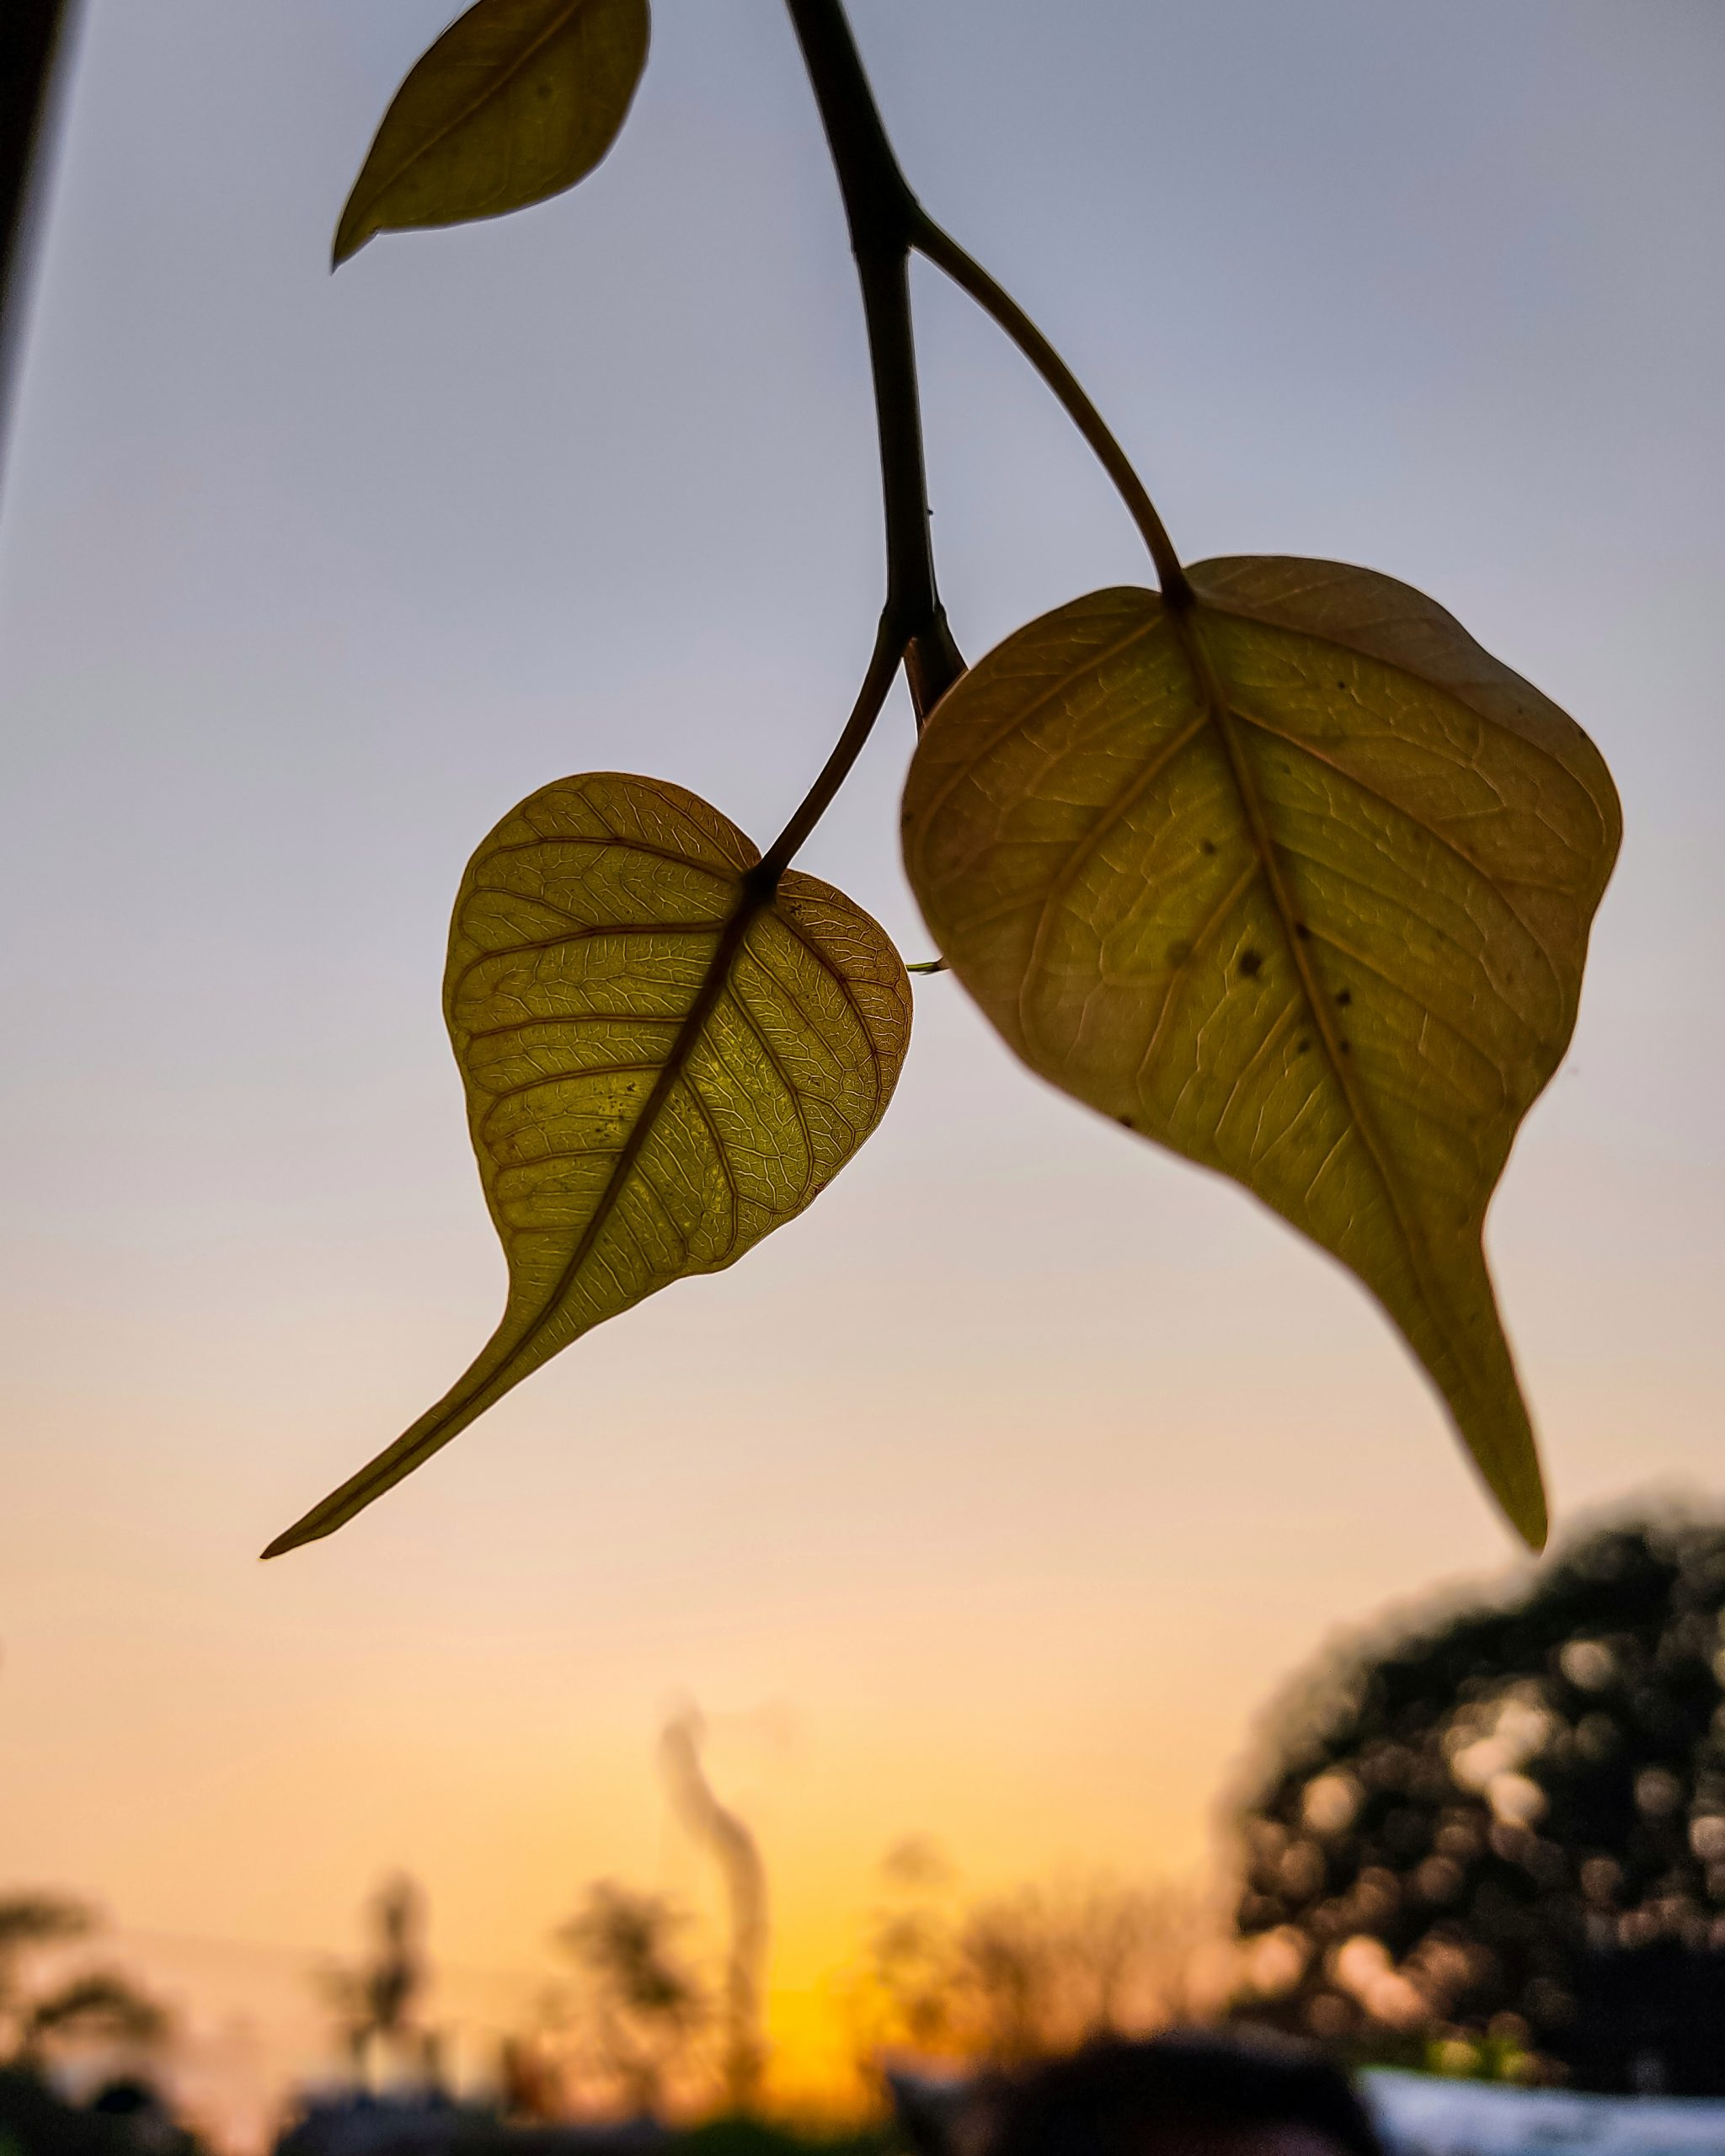 Beautiful view of leaves with sunset behind